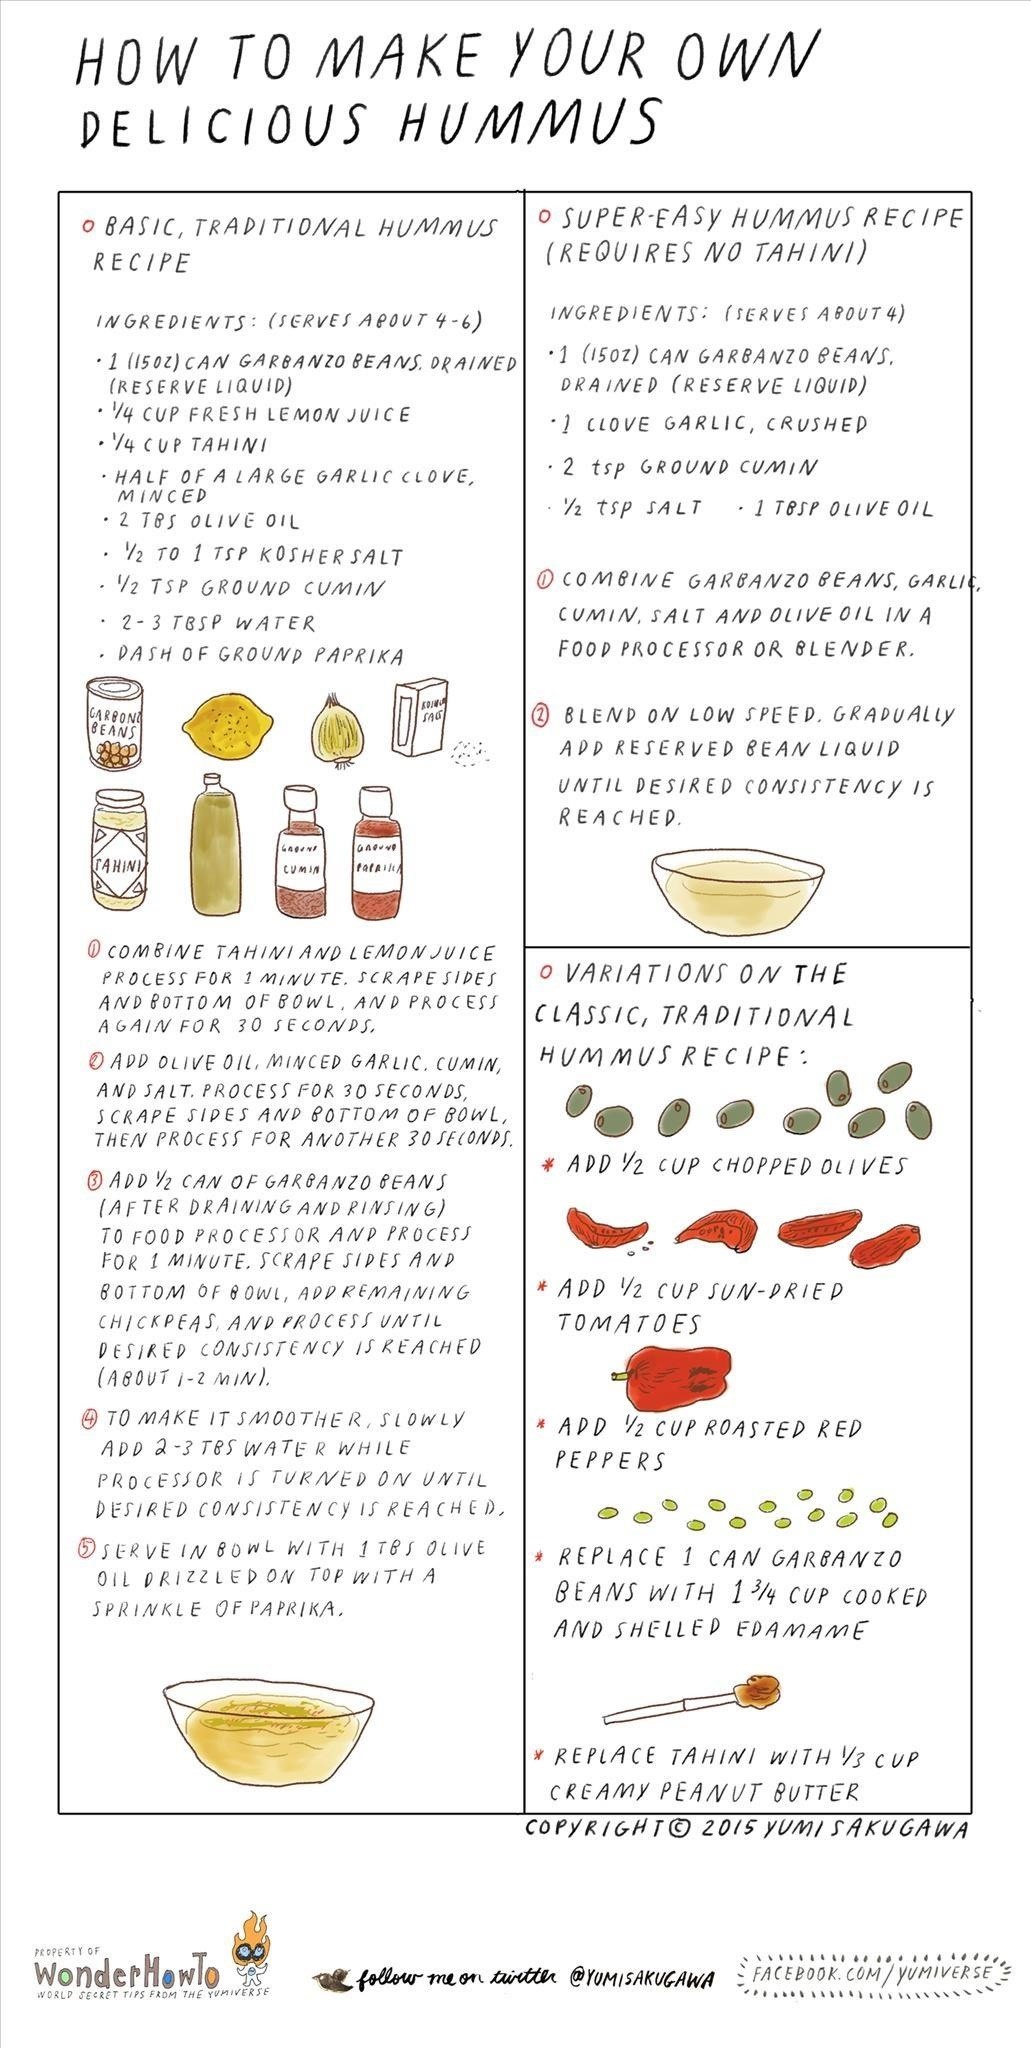 How to Make Your Own Delicious Hummus